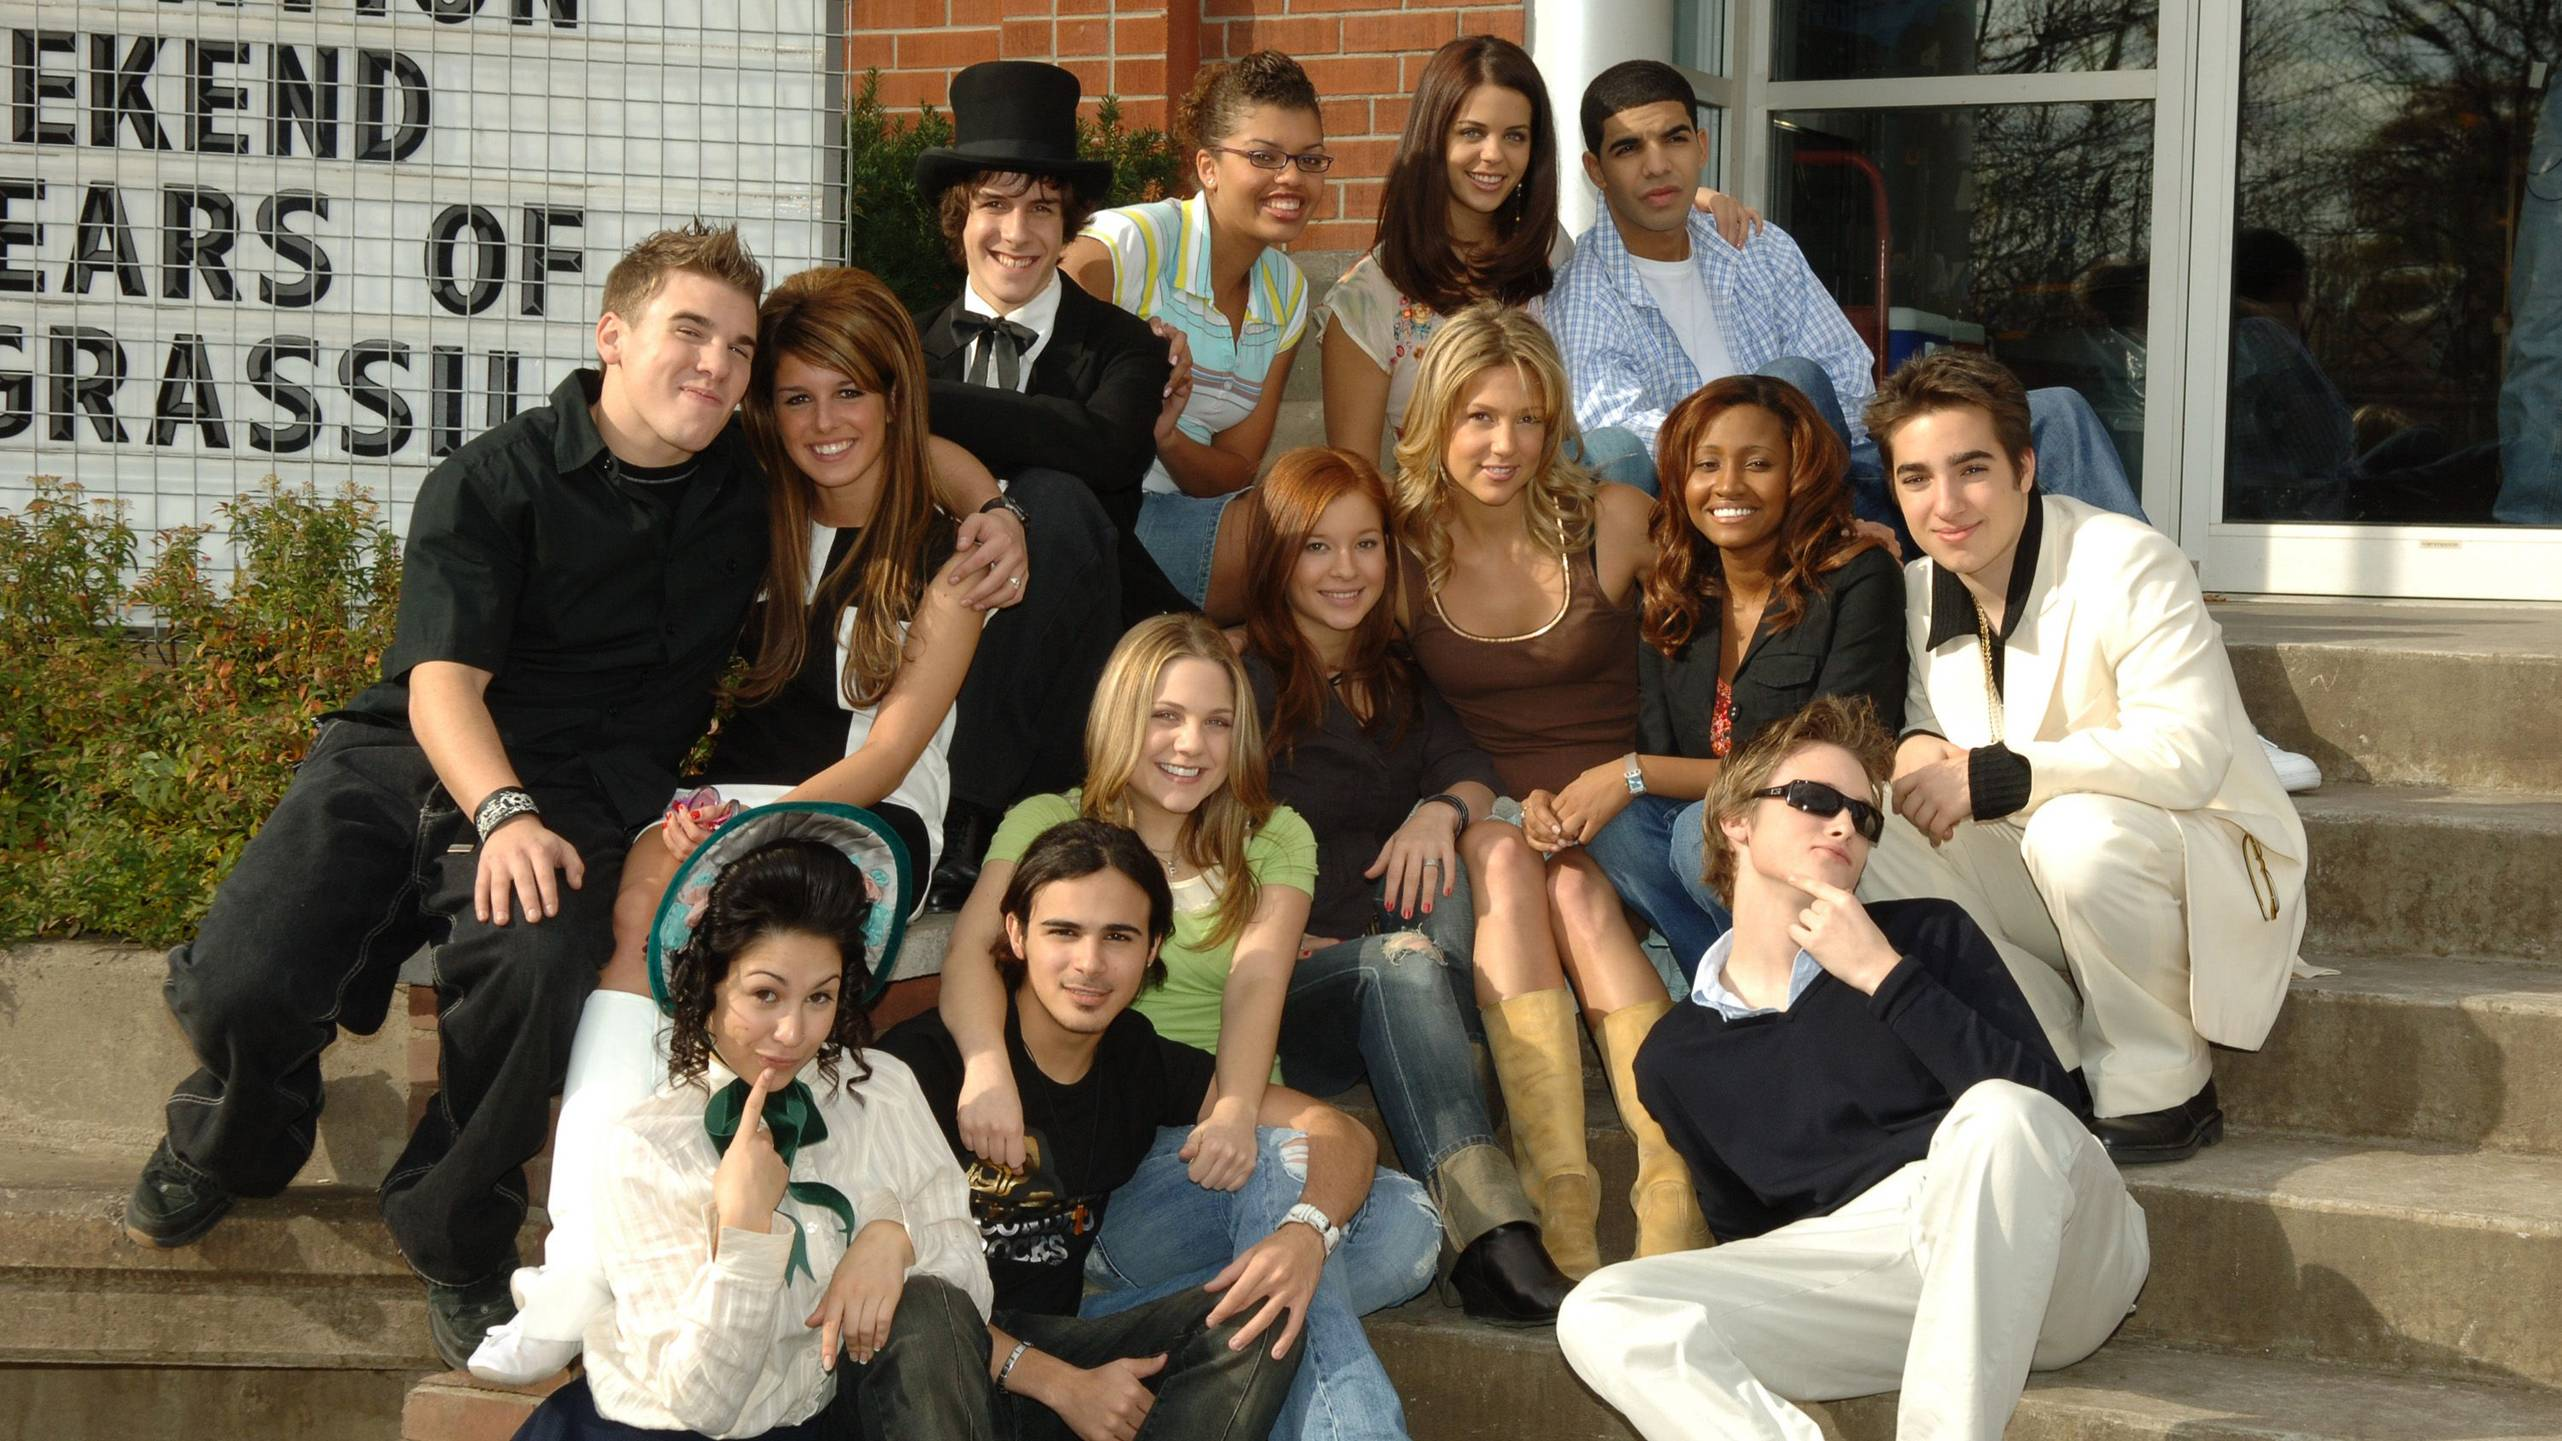 17 Heartbreaking 'Degrassi' Moments Guaranteed To Make You Cry - MTV